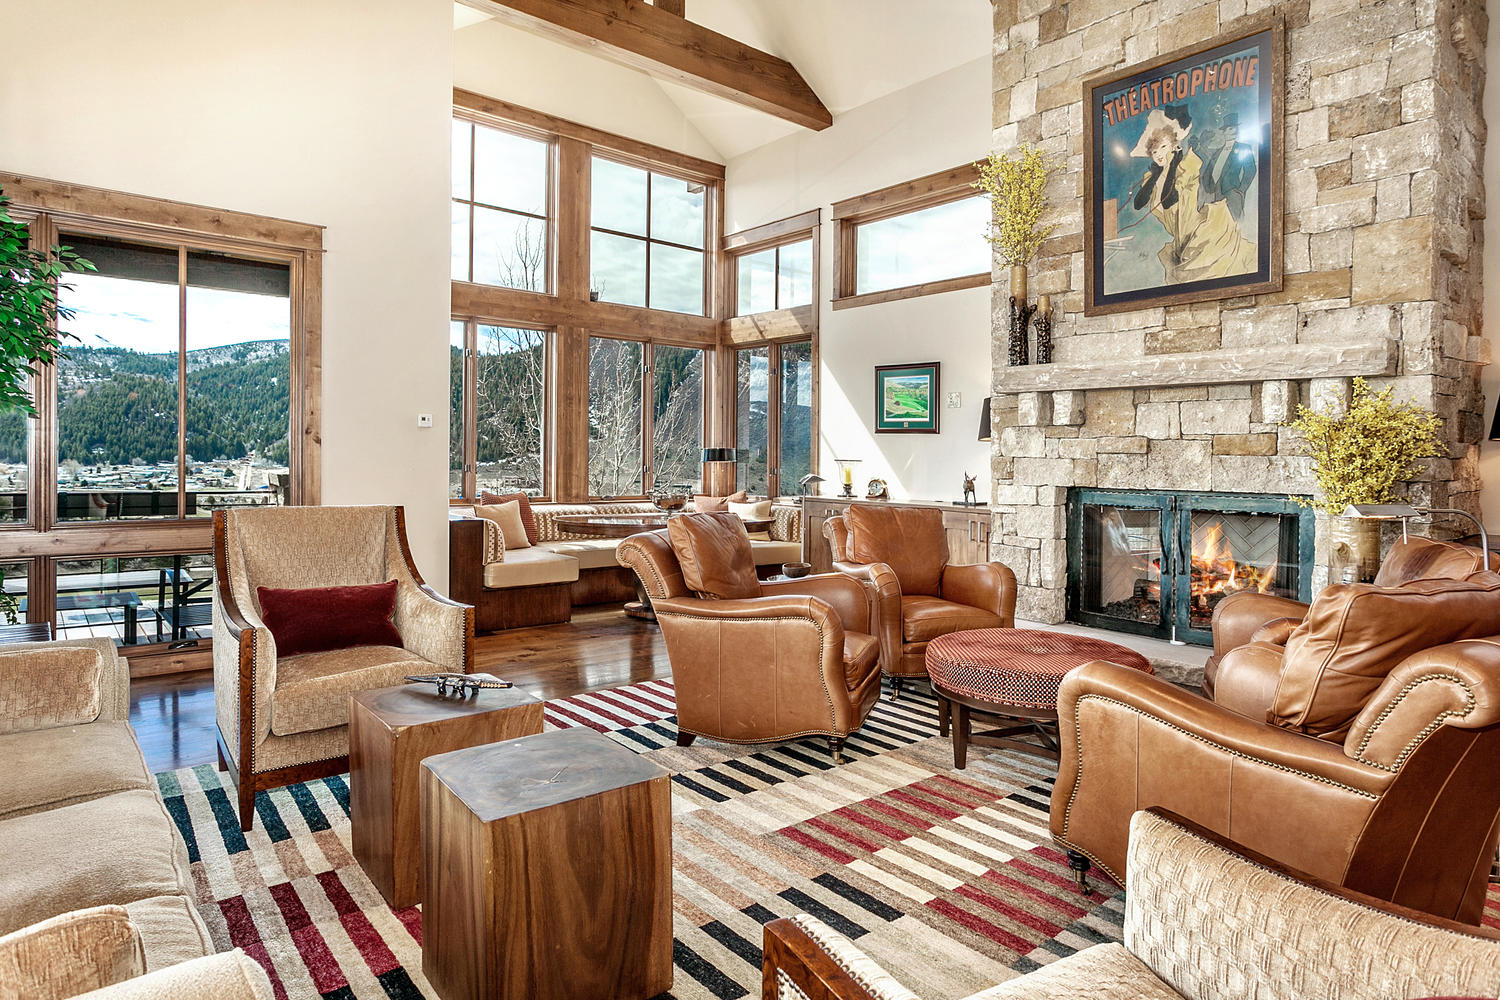 Single Family Home for Sale at A Contemporary Masterpiece in the Cordillera Valley Club 1710 Beard Creek Trail Cordillera Valley Club, Edwards, Colorado, 81632 United States